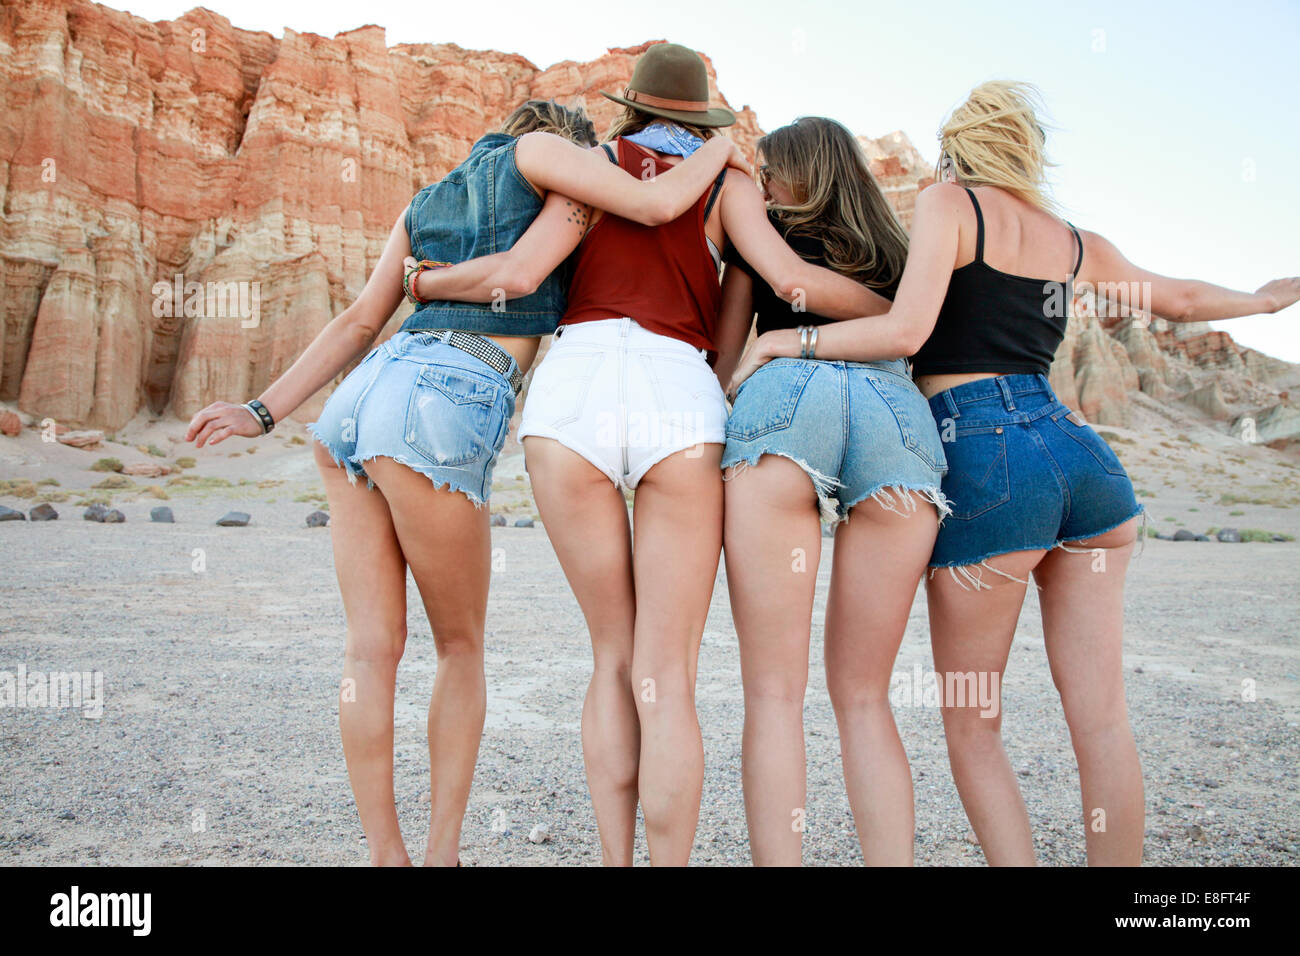 Rear view of four women wearing denim shorts - Stock Image